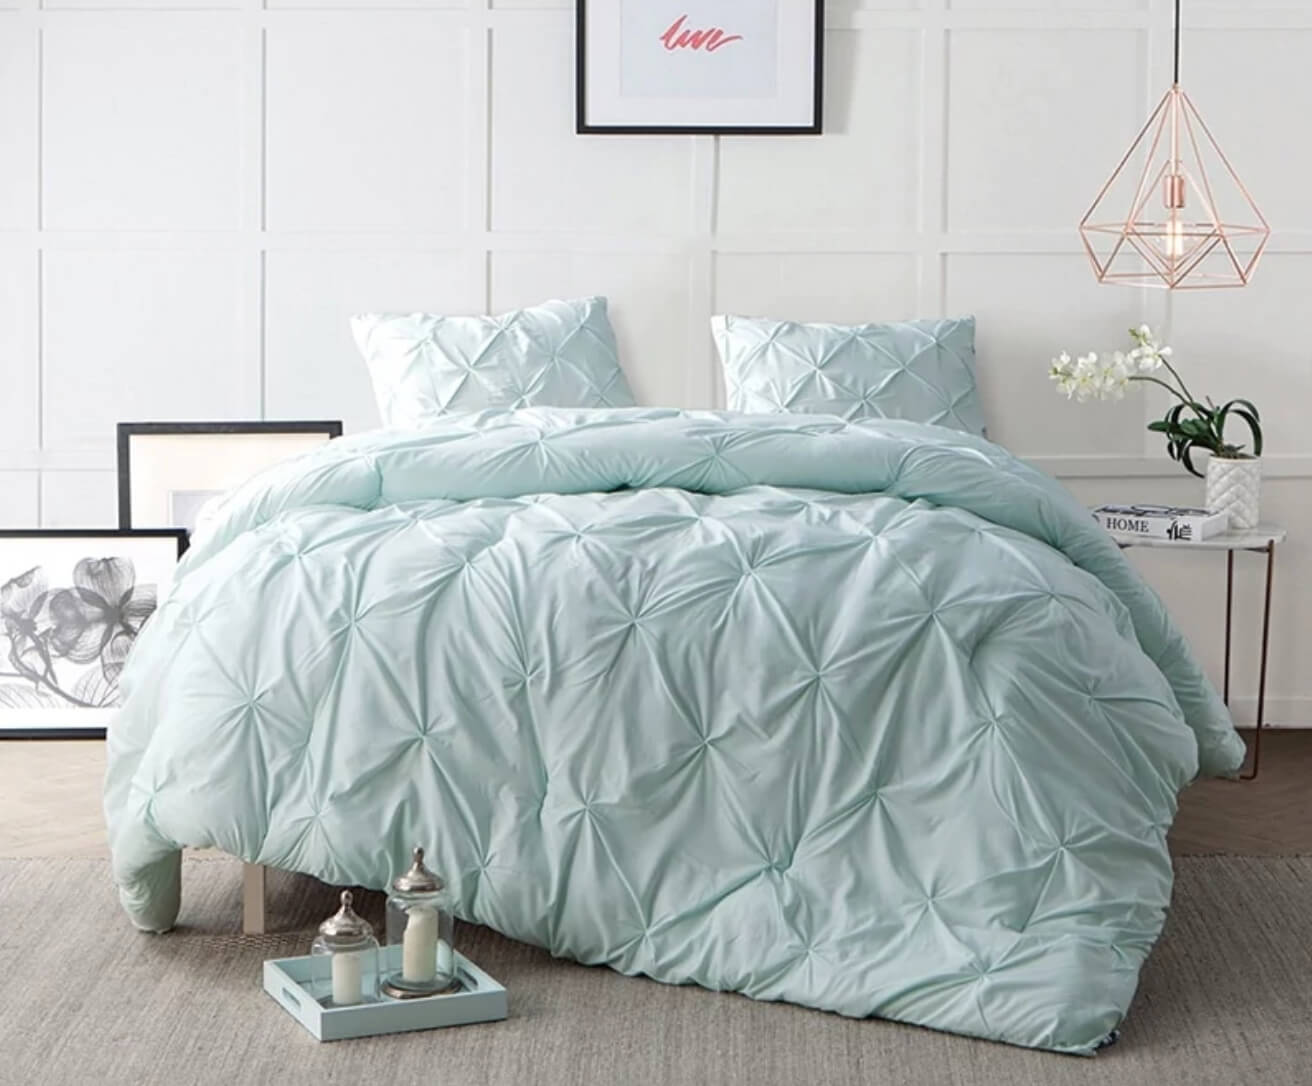 20 awesome dorm room bedding ideas for inspiration - Dorm room bedding ideas ...